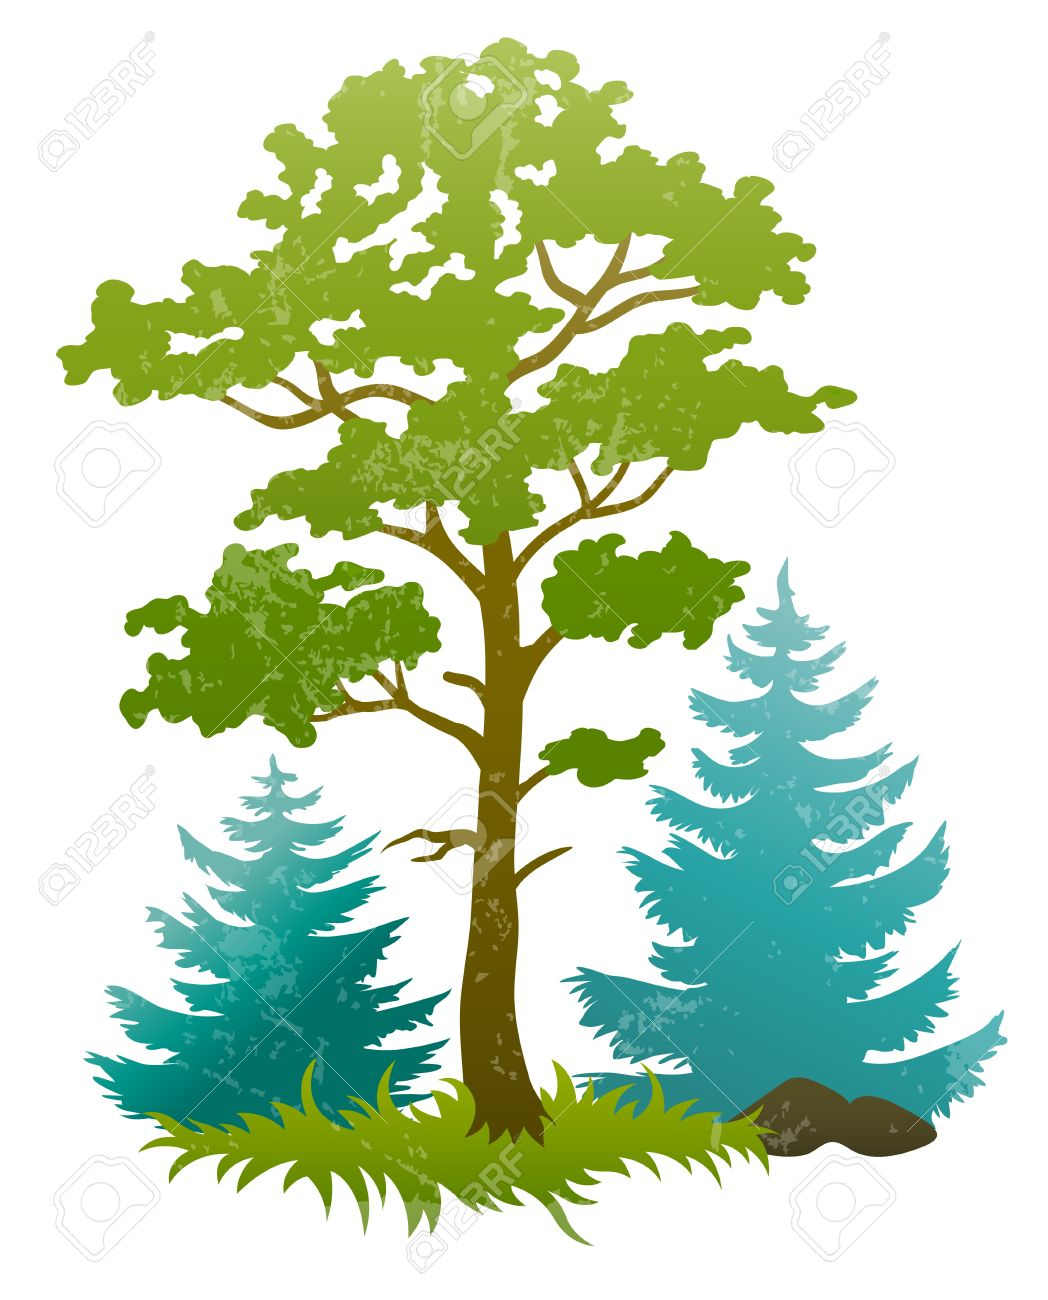 Forest Tree Drawing at GetDrawings.com | Free for personal use ...